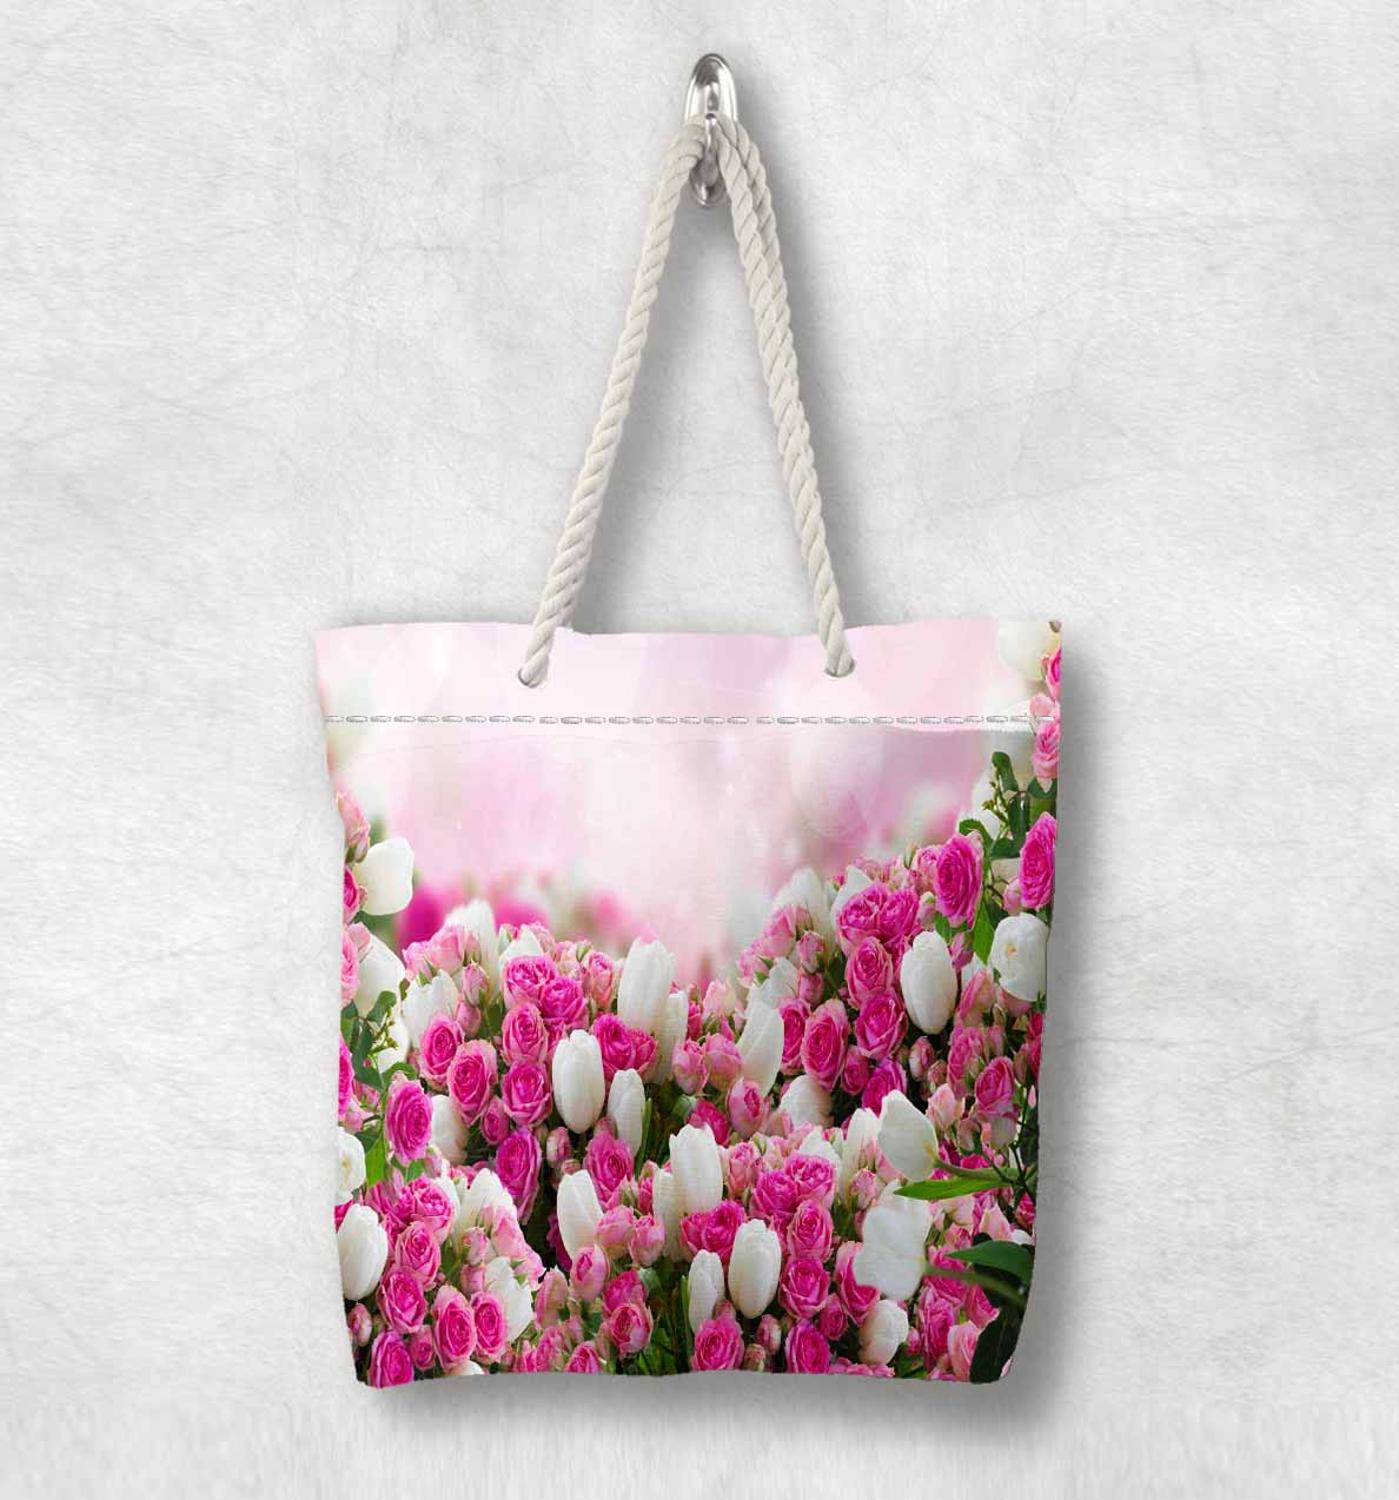 Else Pink White Tulips Roses Flower Floral New Fashion White Rope Handle Canvas Bag Cotton Canvas Zippered Tote Bag Shoulder Bag